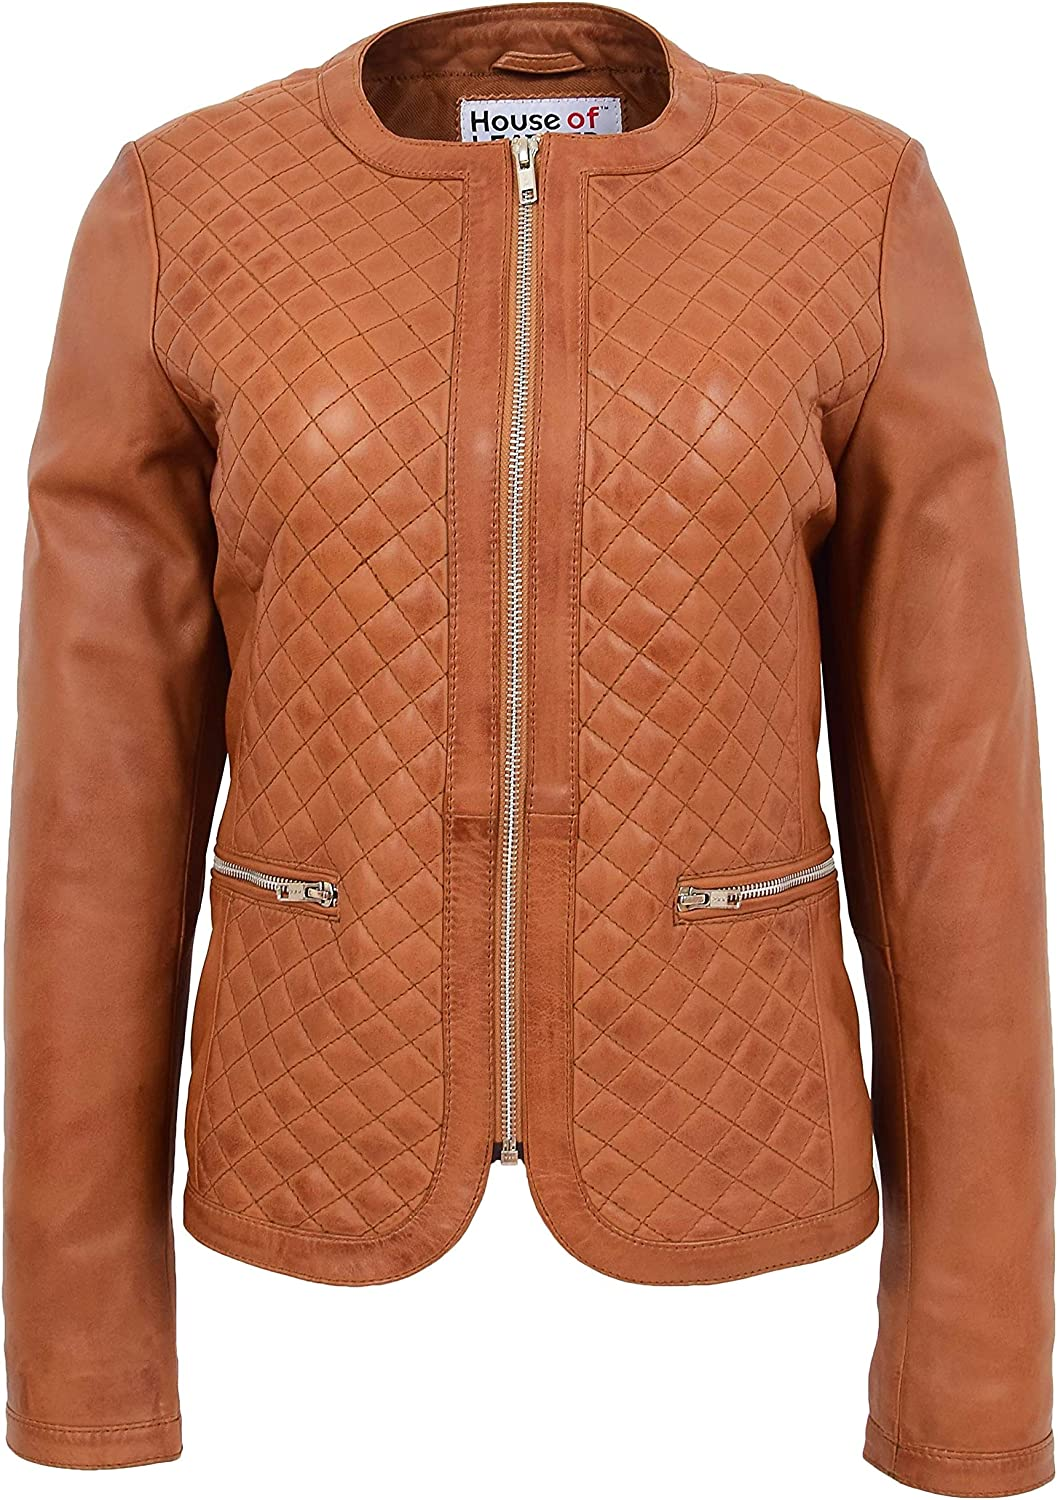 Womens Soft Leather Collarless Jacket Casual Quilted Design Joan Tan